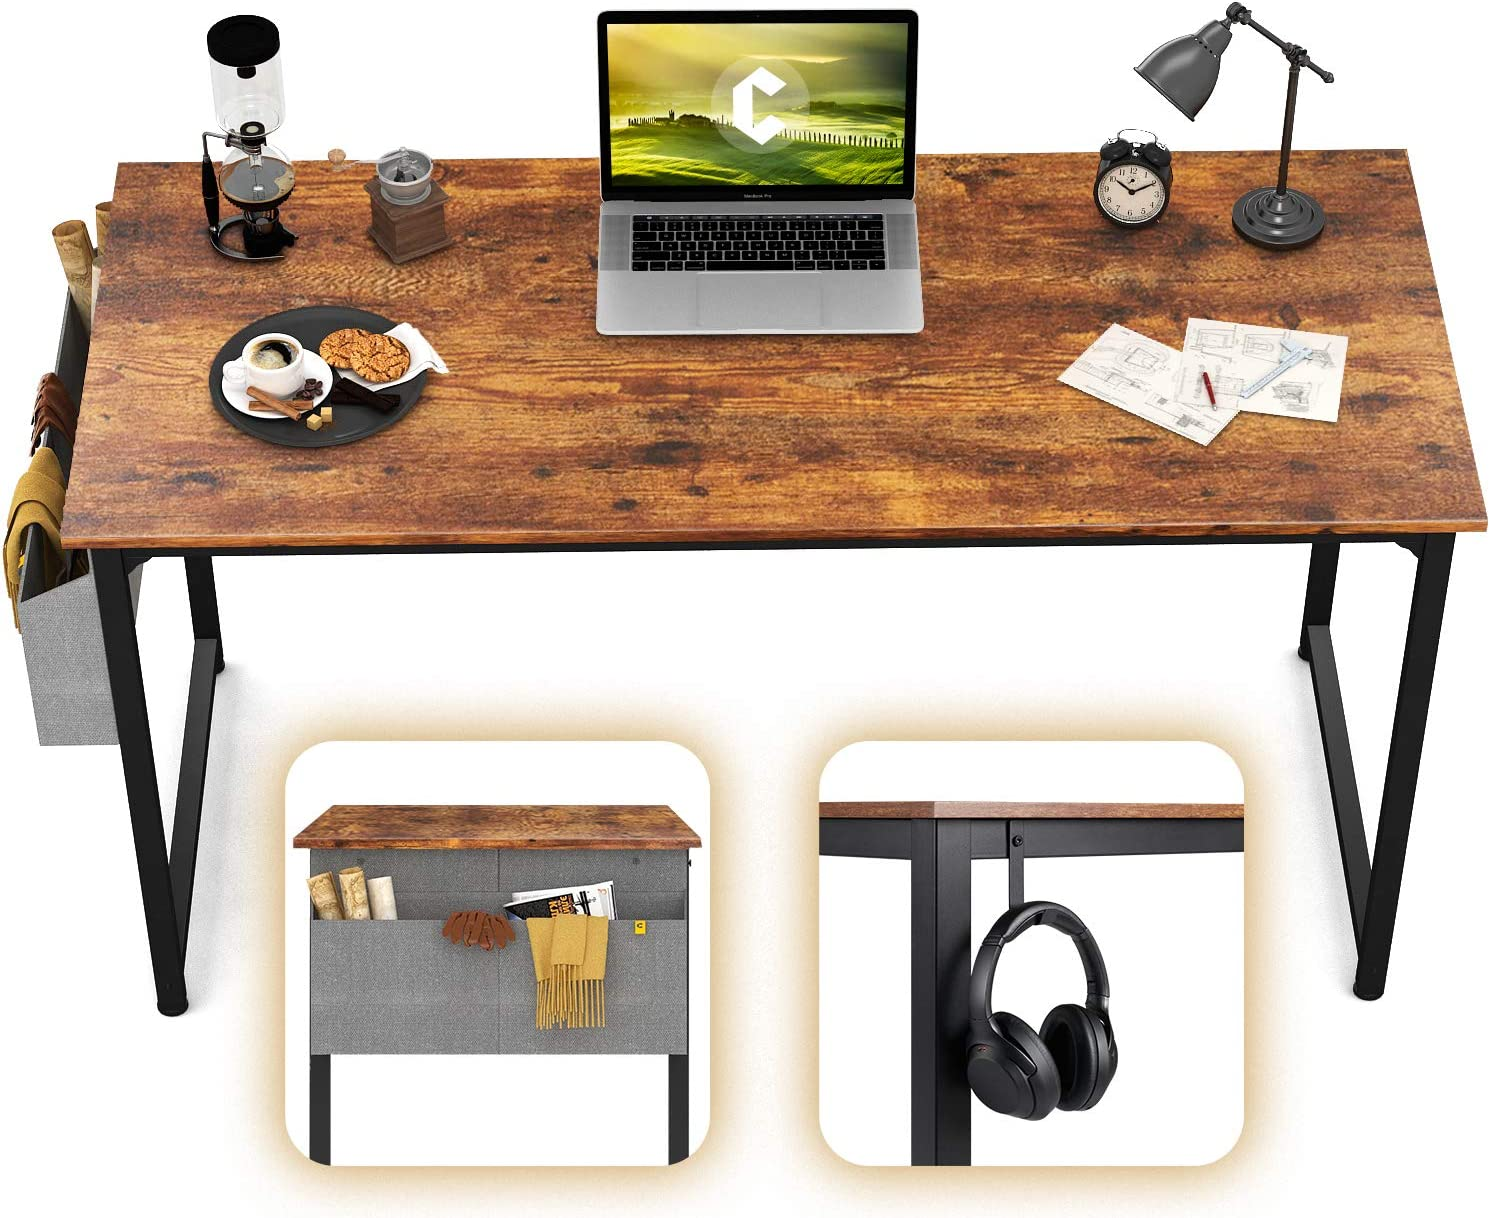 "CubiCubi Computer Desk 47"" Study Writing Table for Home Office, Industrial Simple Style PC Desk, Black Metal Frame, Rustic"